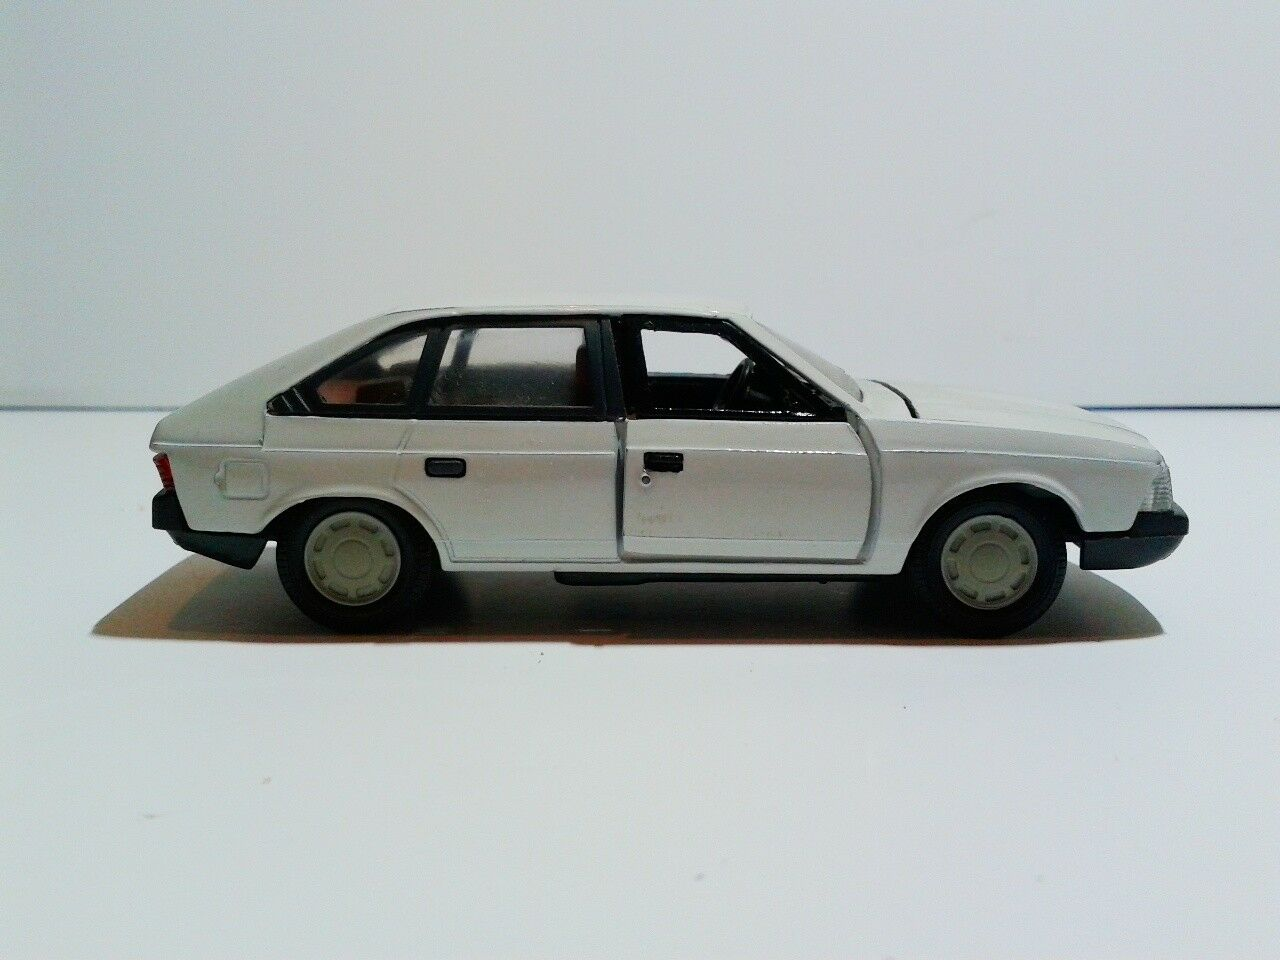 Tantal NOVOEXPORT CCCP USSR Moskvich 2141 2141 2141 white color 1 43 9cfd84